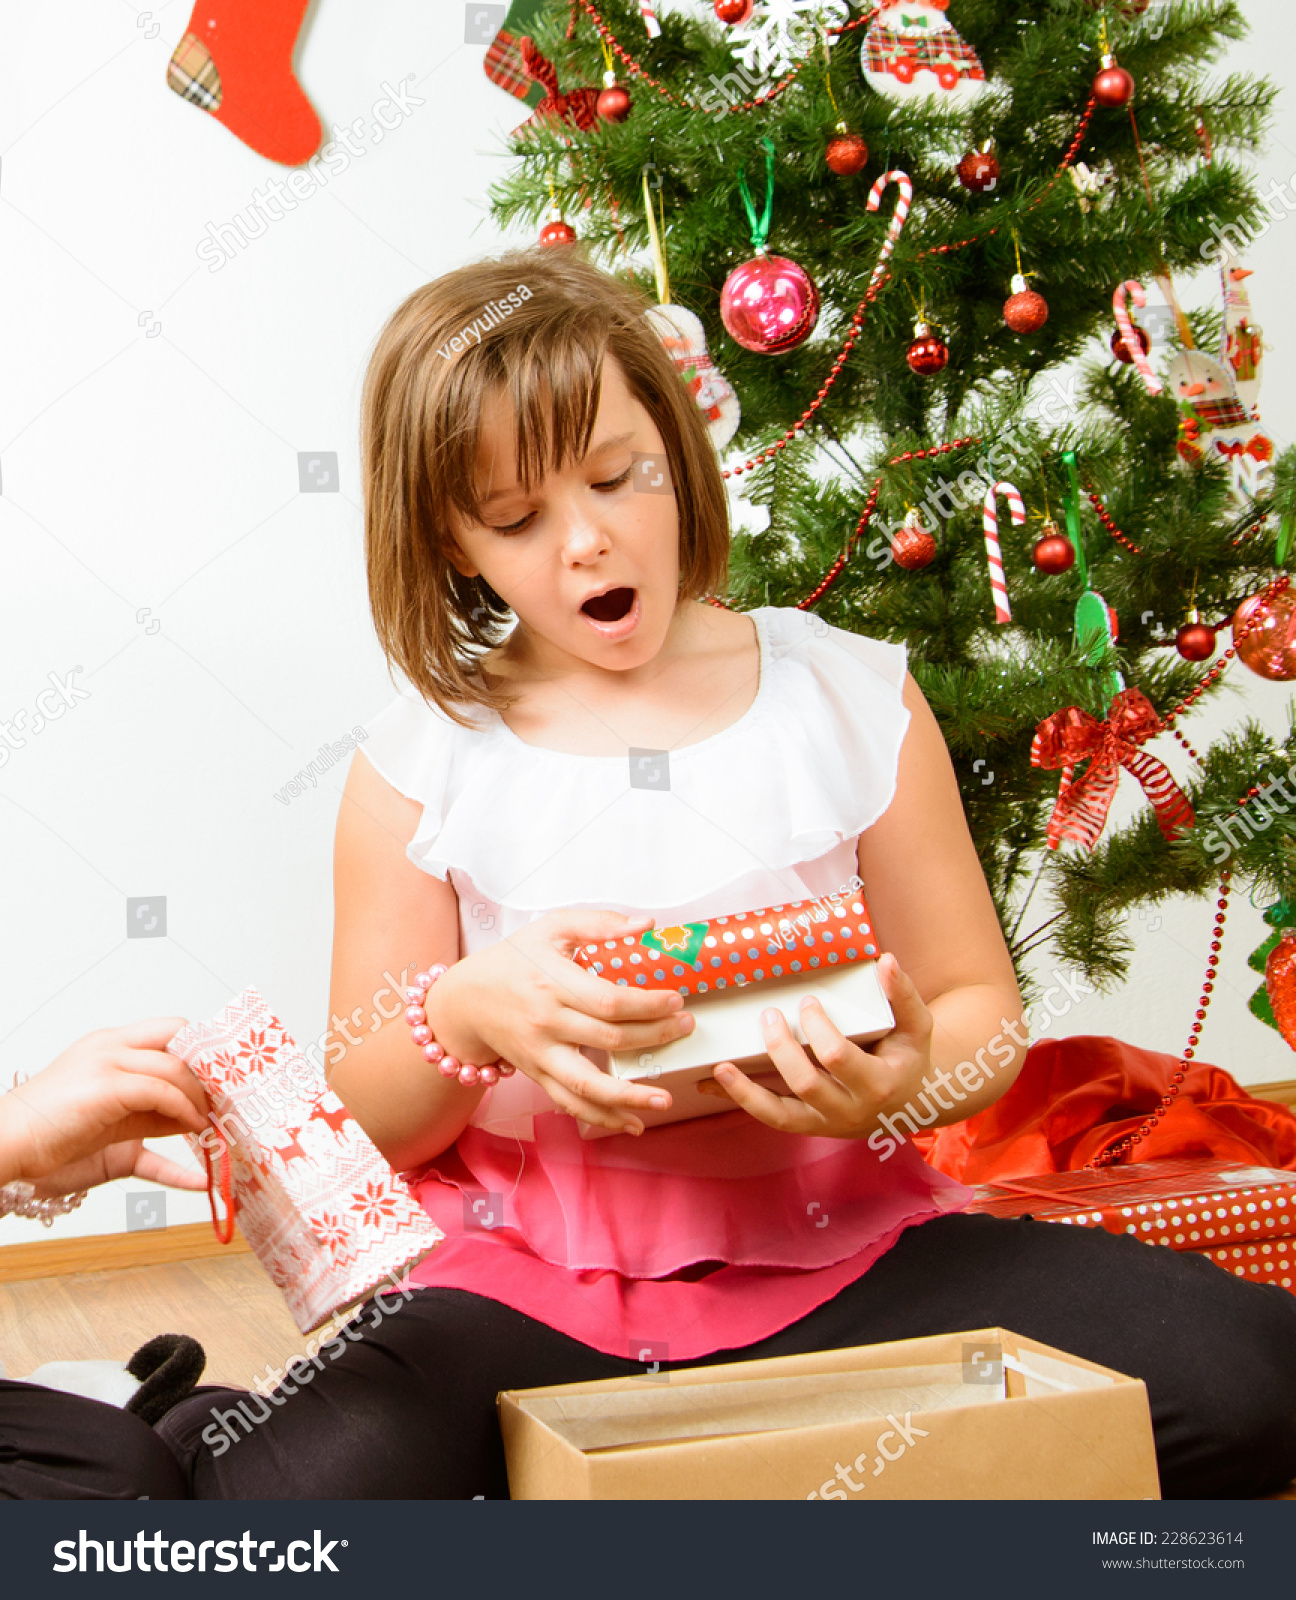 Cute Girl Christmas Gifts Stock Photo (Edit Now) 228623614 ...